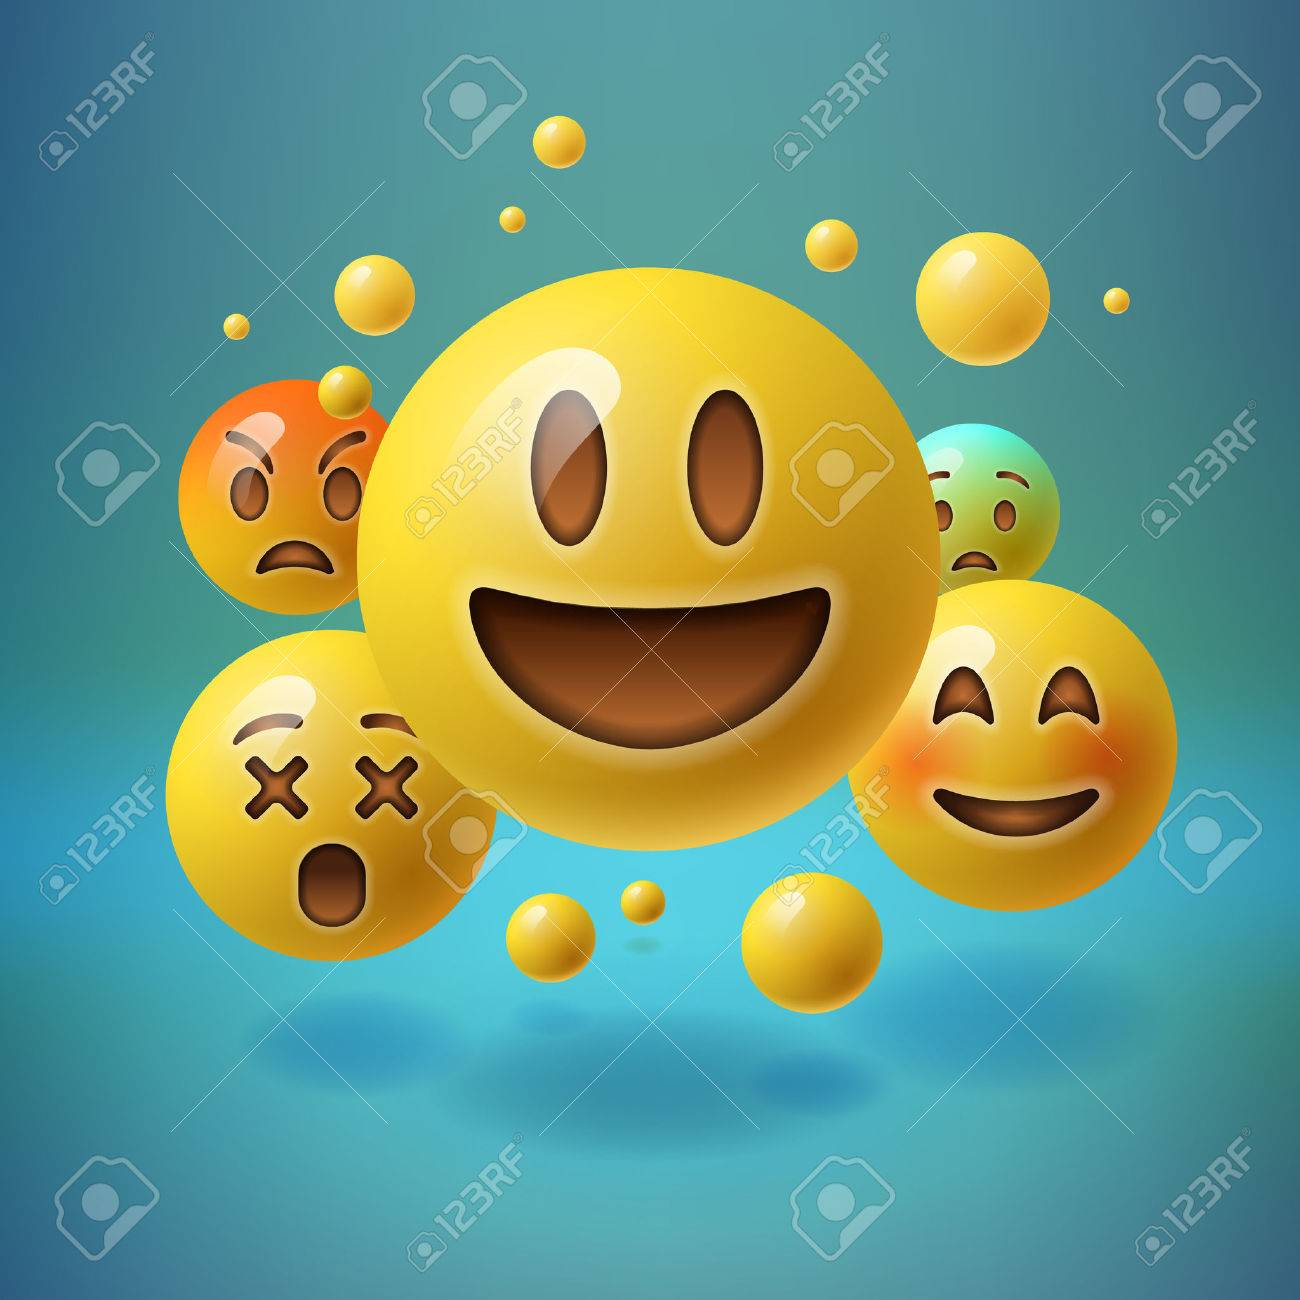 Smiley emoticons, emoji, social media concept, vector illustration. Standard-Bild - 55728717